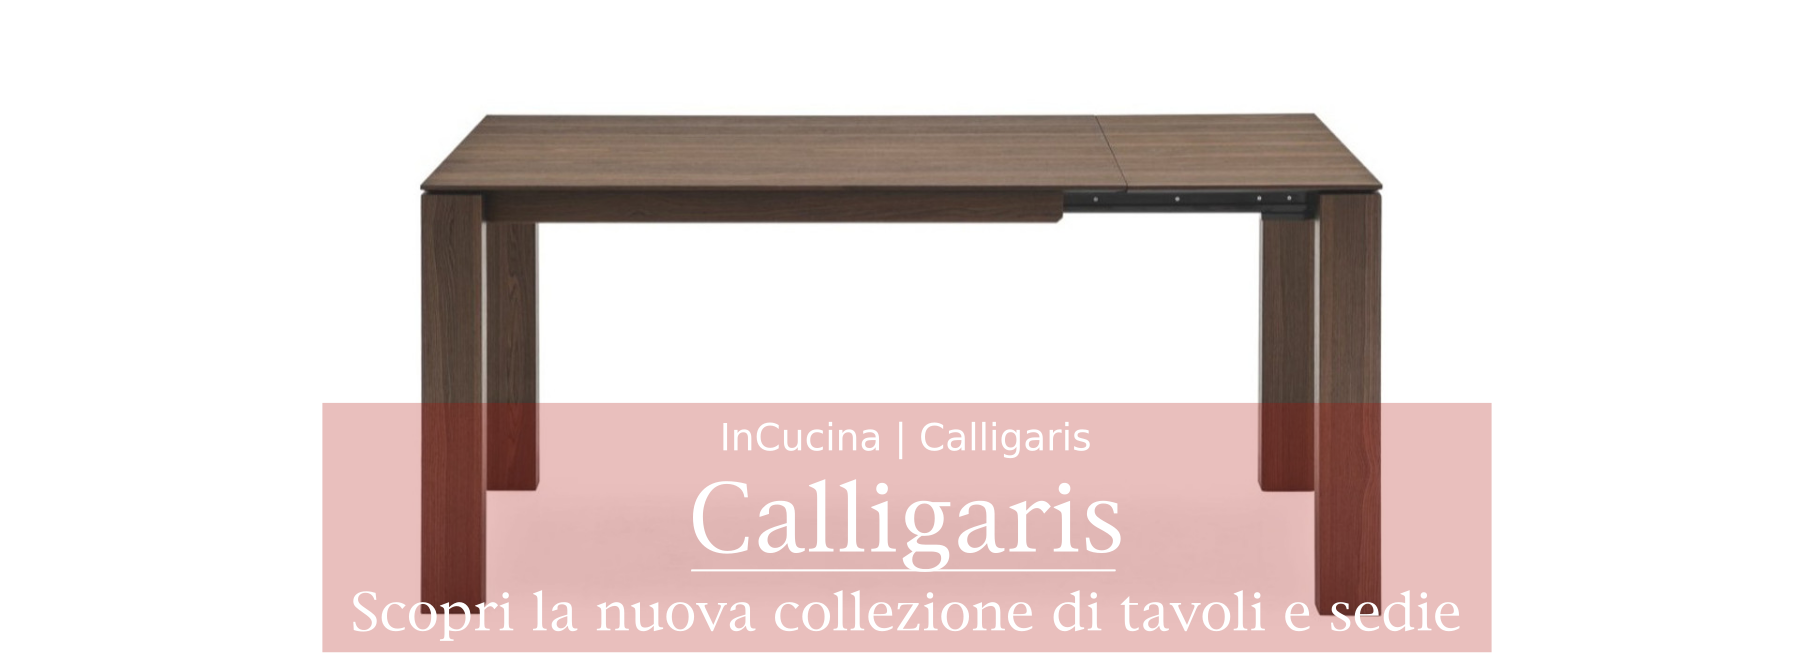 CALLIGARIS_SLIDER_1920_700